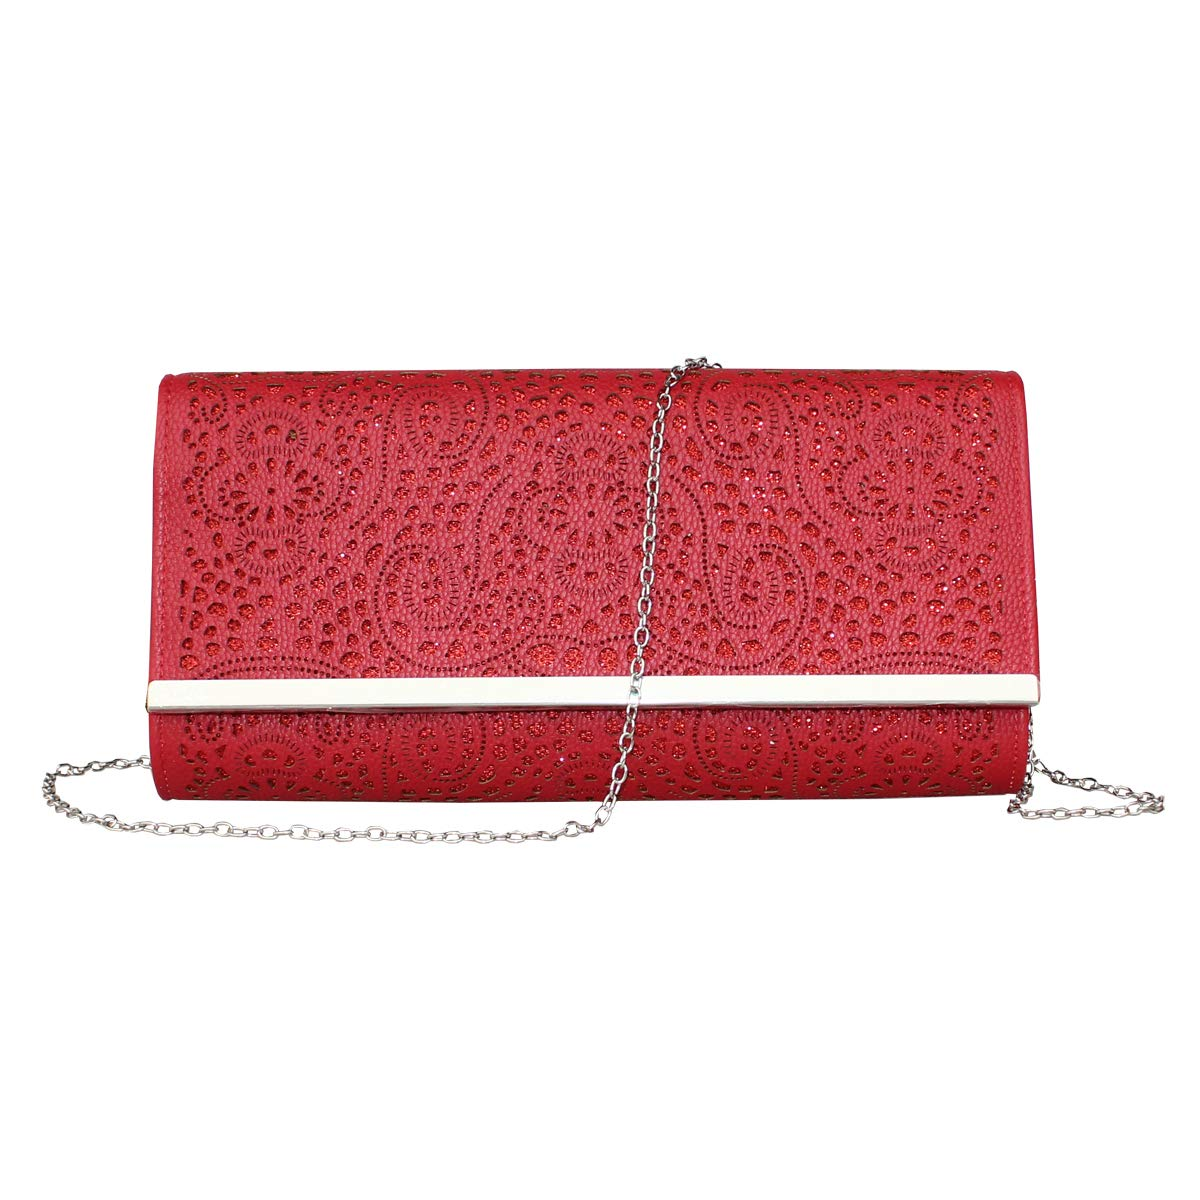 Womens Faux Leather Envelope Clutch Bag Evening Handbag Shouder Bag With Chain Strap. (red-1)